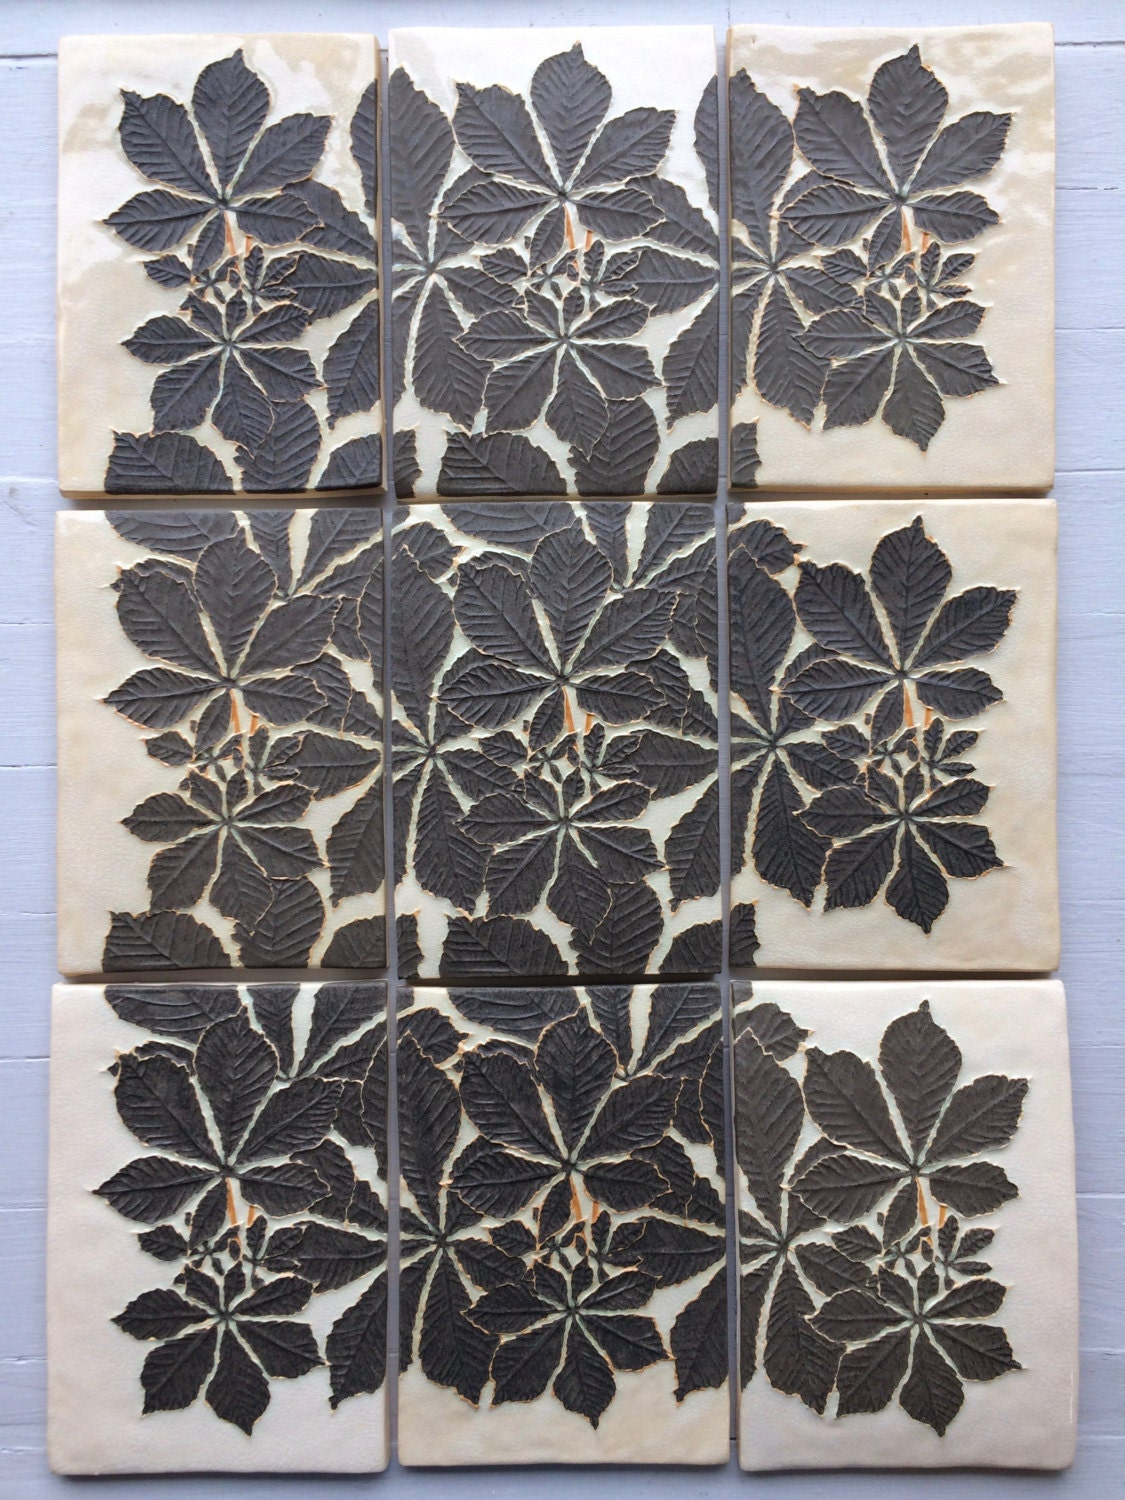 Chestnut leaves tiles 9 tile panel handmade ceramic relief zoom doublecrazyfo Images